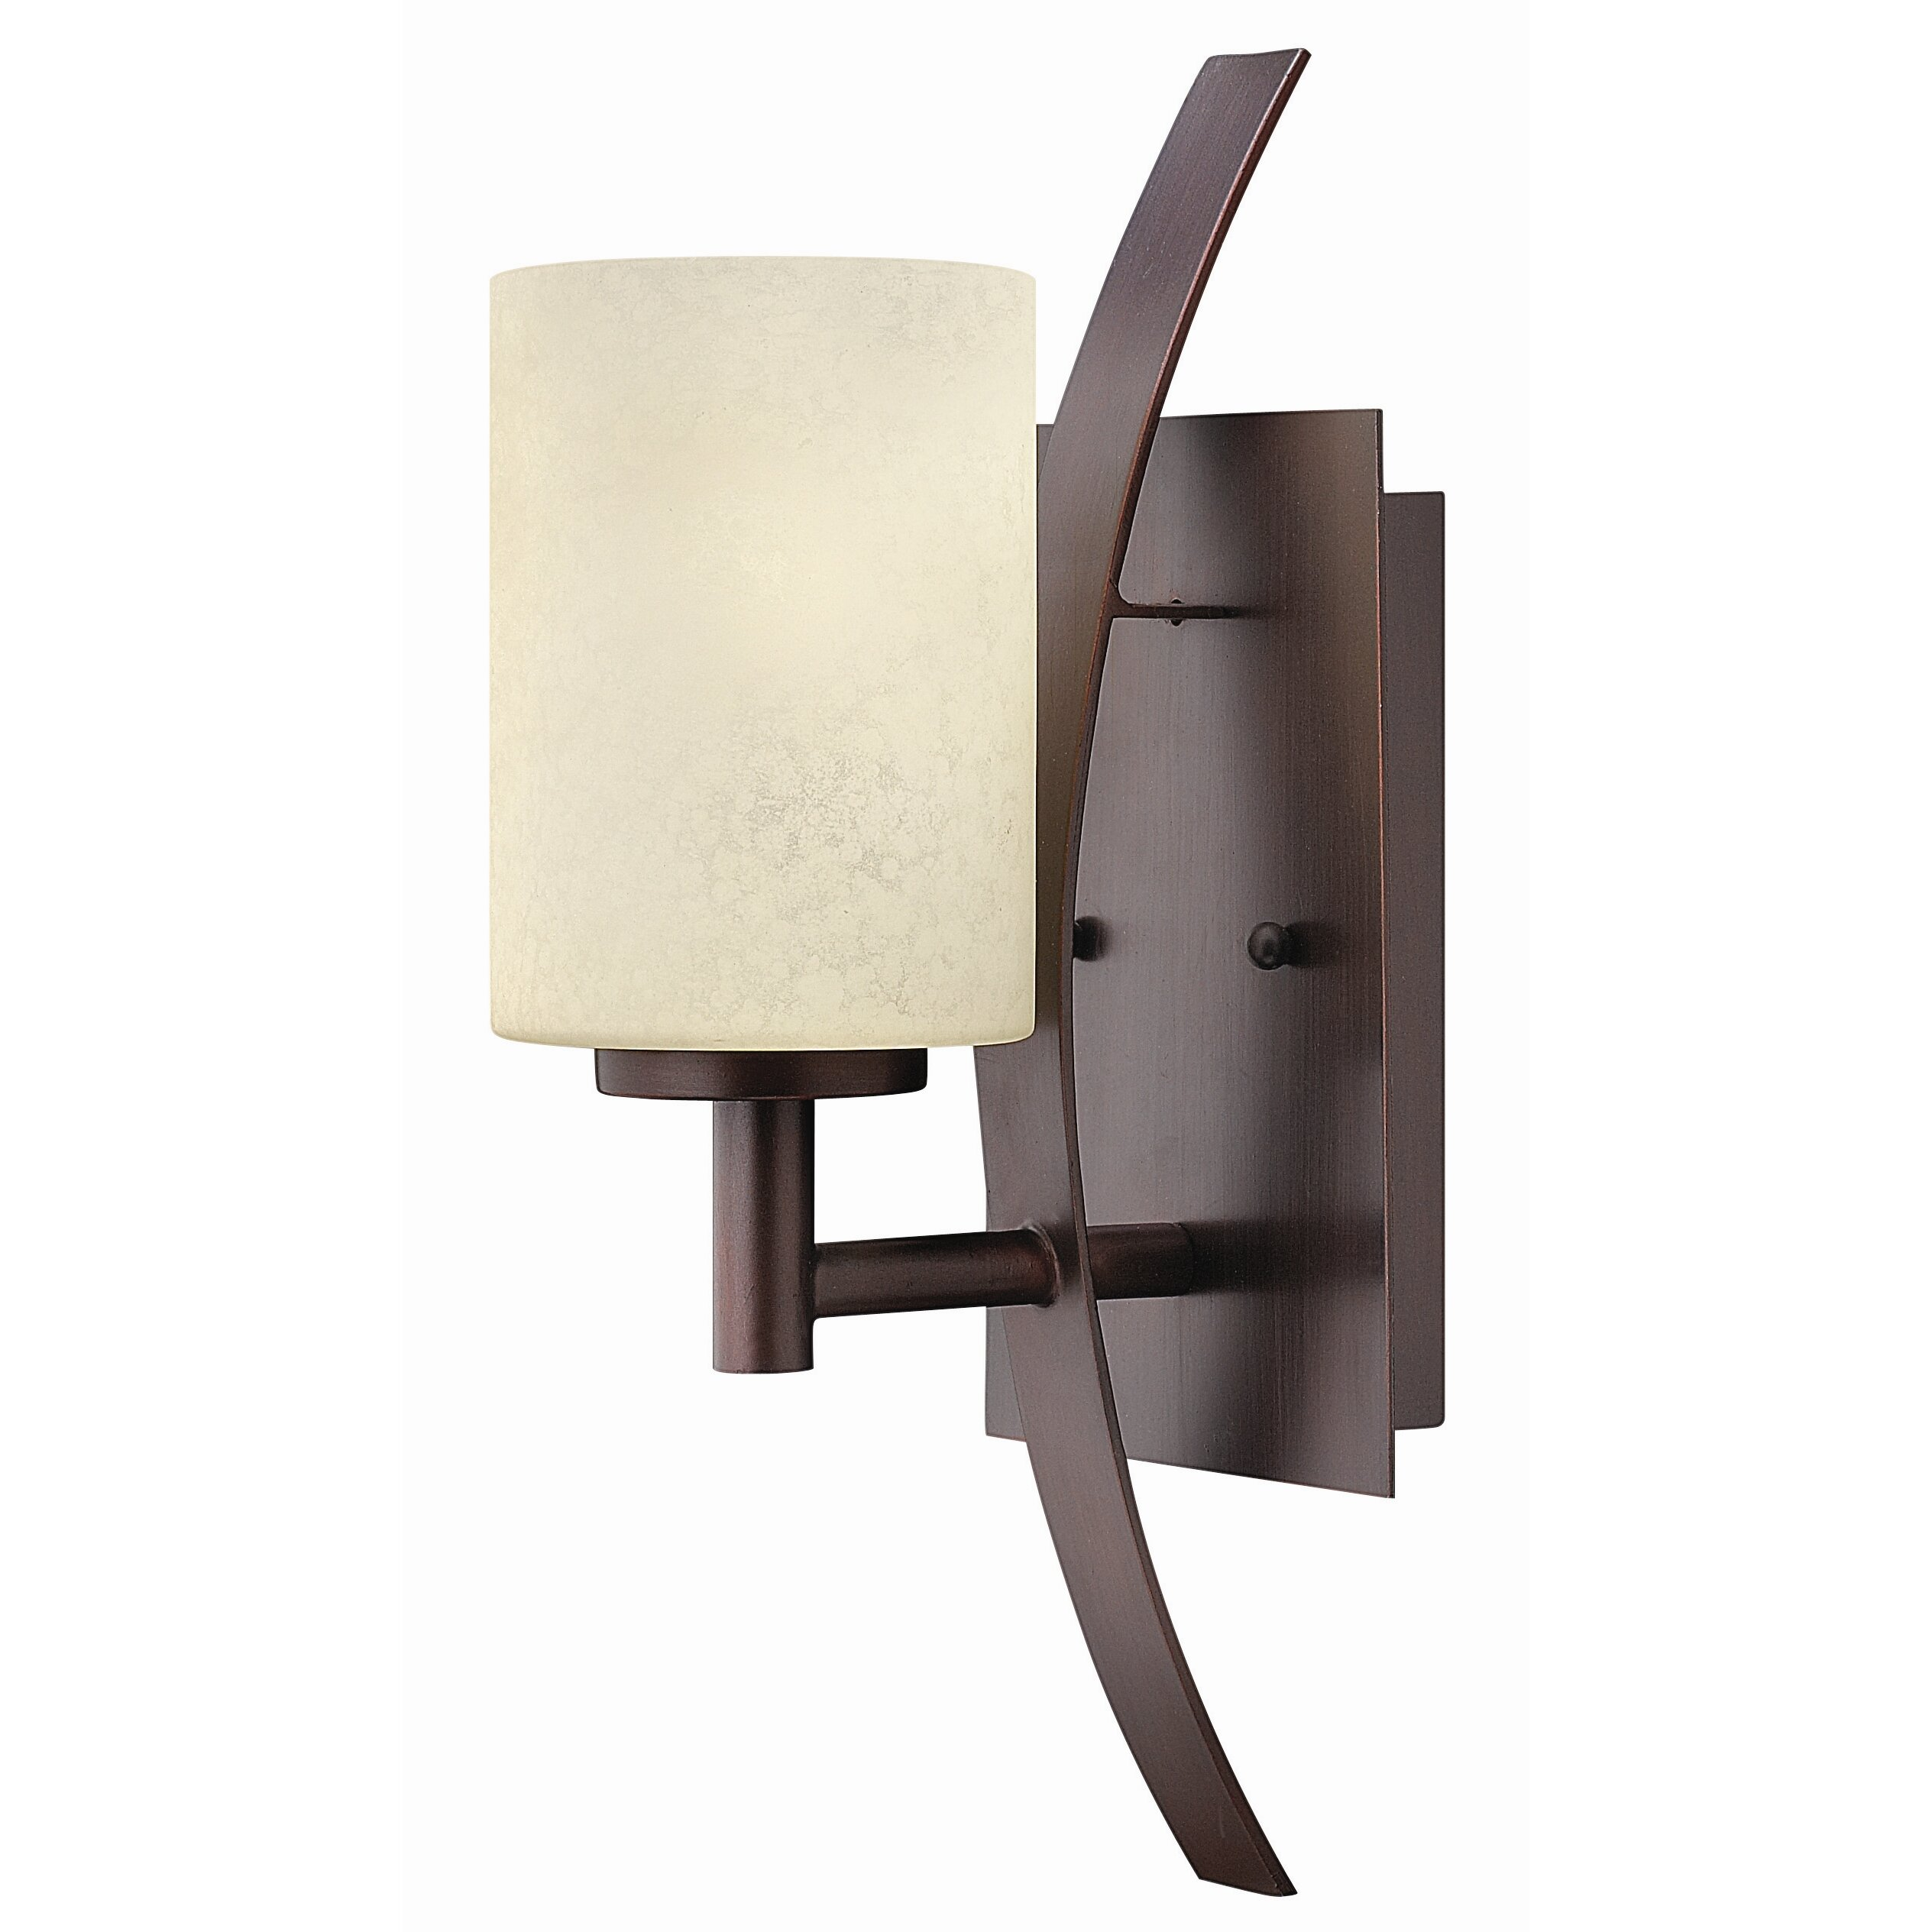 Hinkley lighting stowe 1 light vanity wall sconce for Wall sconces bathroom lighting